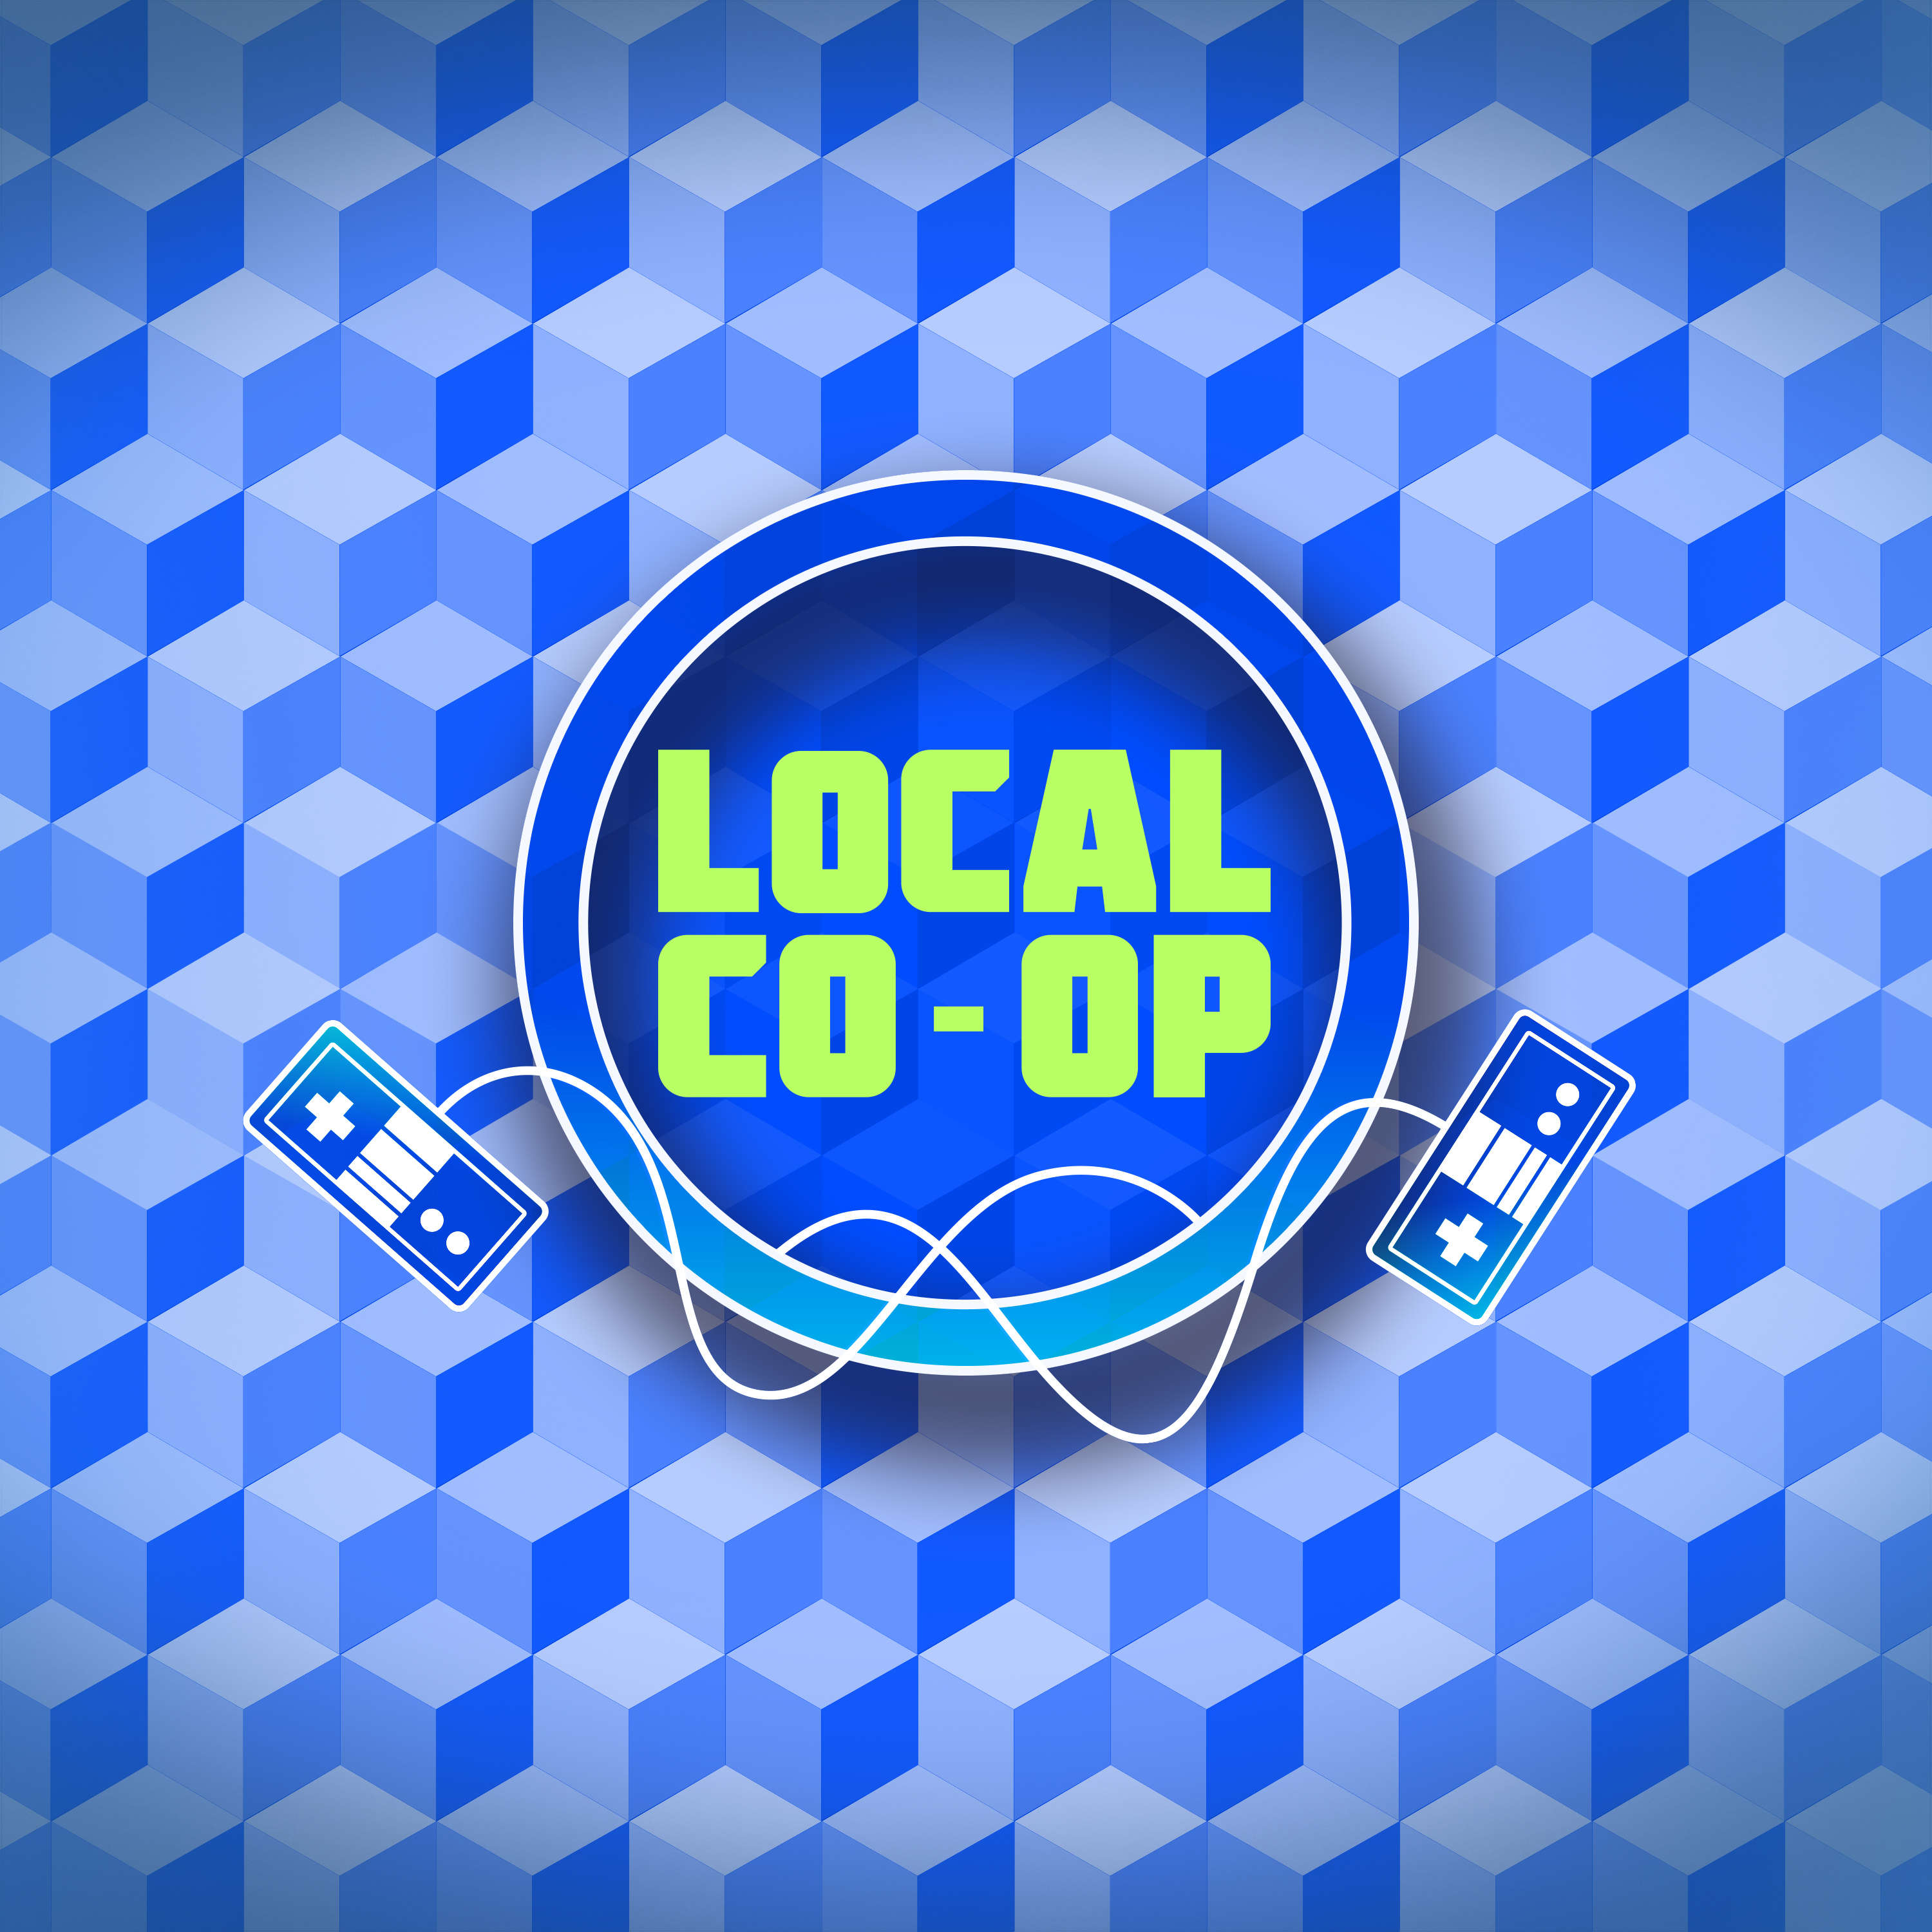 LOCAL CO-OP: Episode 5 - Problems in Always Covering New Games